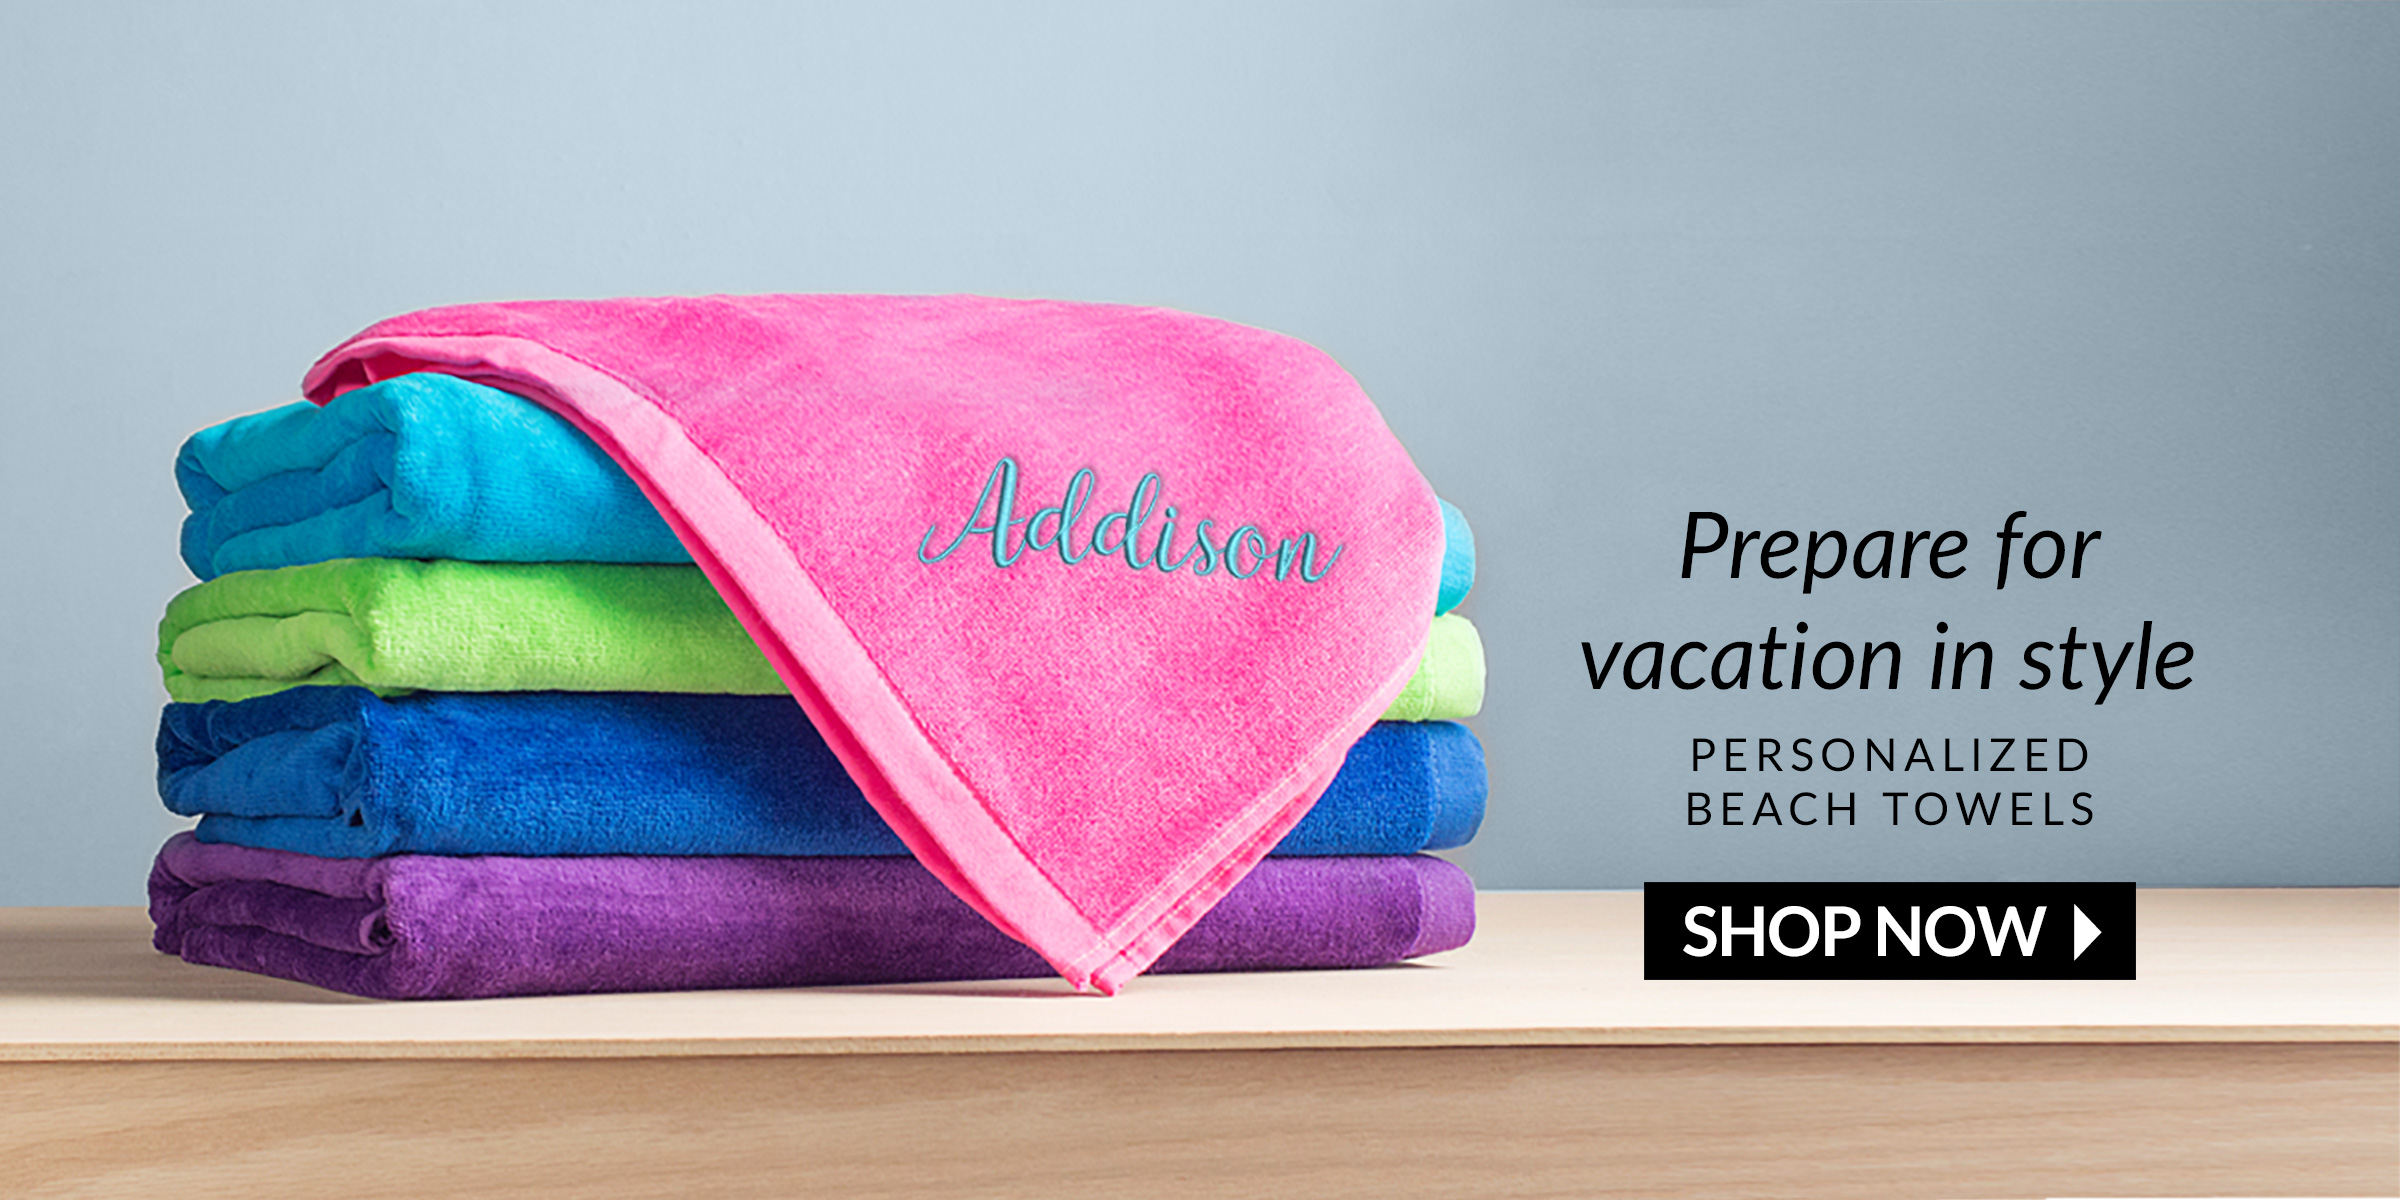 Prepare for vacation in style. Personalized beach towels. SHOP NOW.